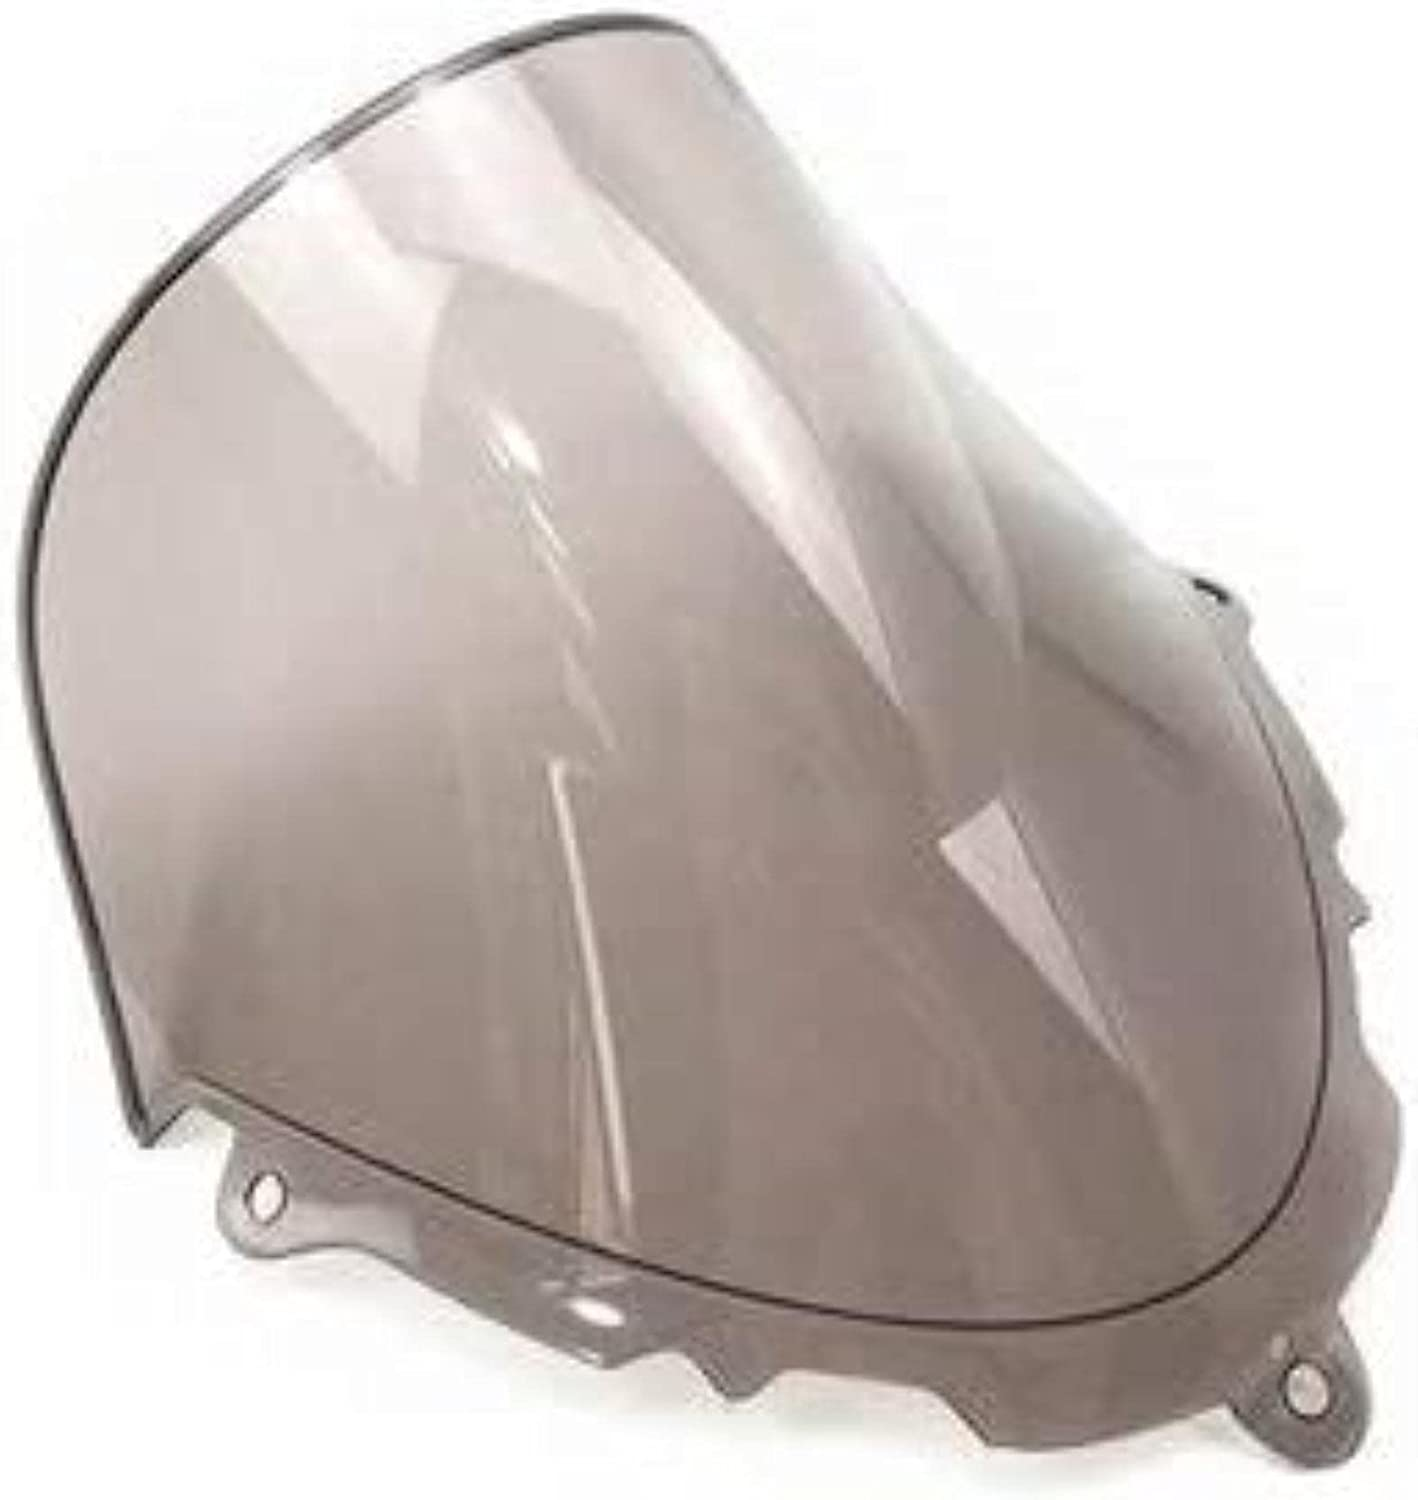 Wzglod Motorcycle Shipping included Windshield Windscreen Limited Special Price S-u-z-u-k-i-Kata Fit for